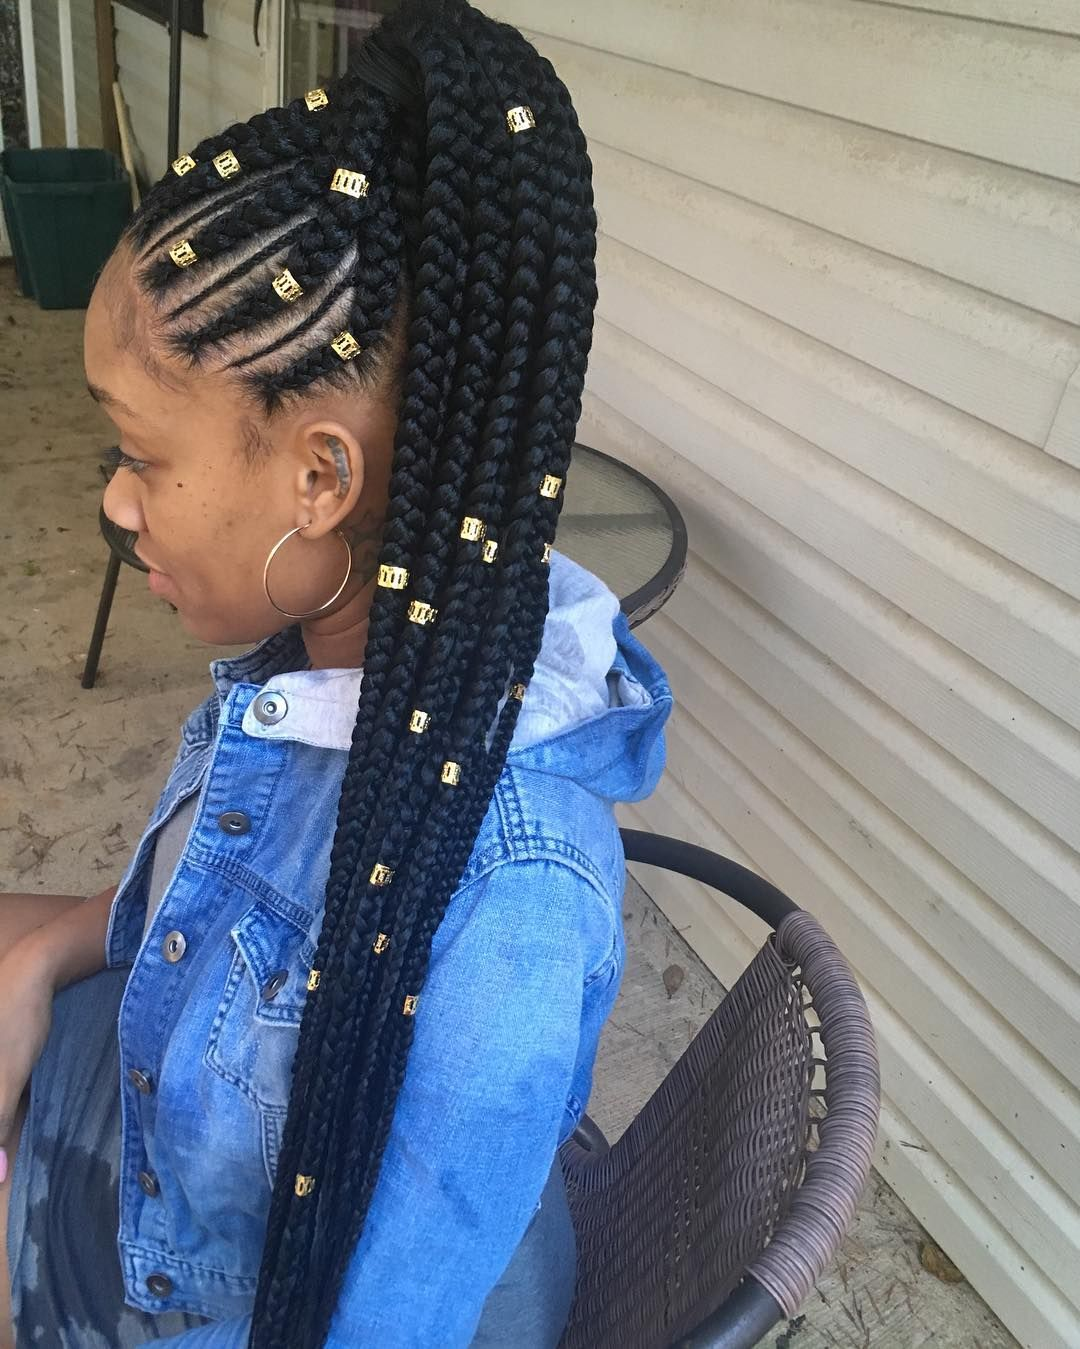 Awesome 30 cornrow hairstyles for different occasions get your awesome 30 cornrow hairstyles for different occasions get your special look today pmusecretfo Image collections